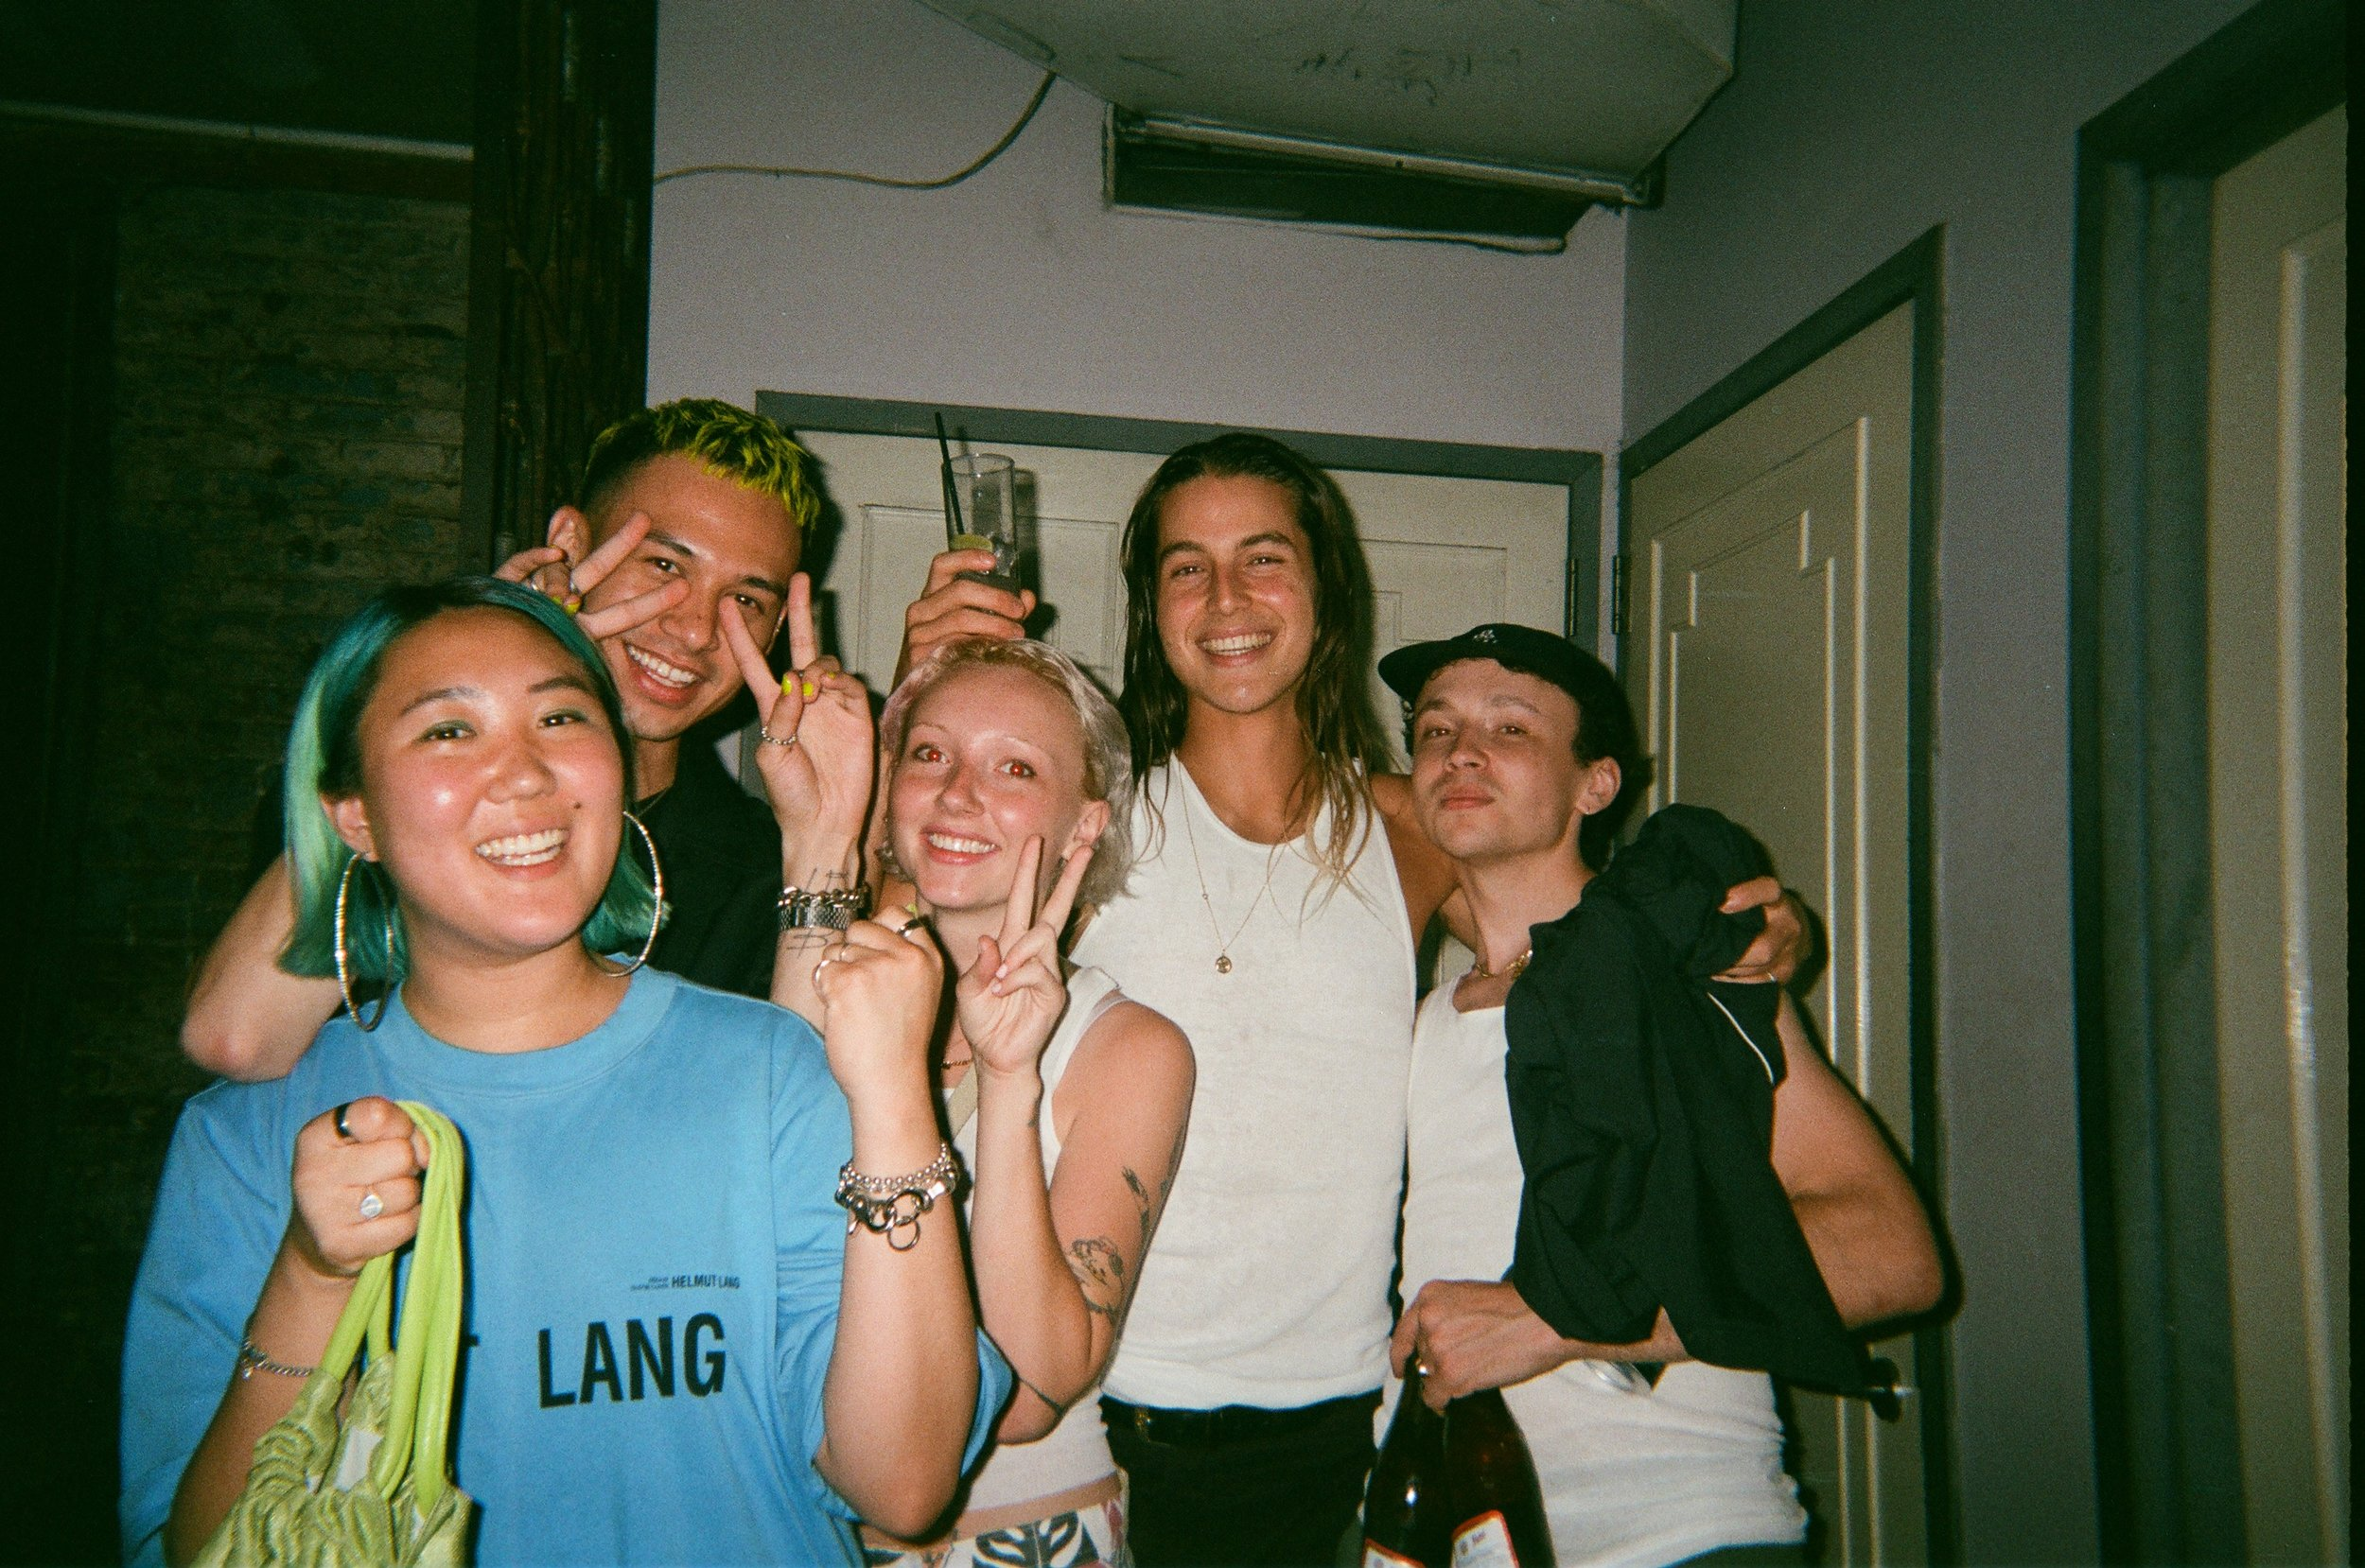 August 2018 // New York, New York  - Some of my cutie coworkers at our summer werk party. I love work parties because you're able to be with all your coworkers in a